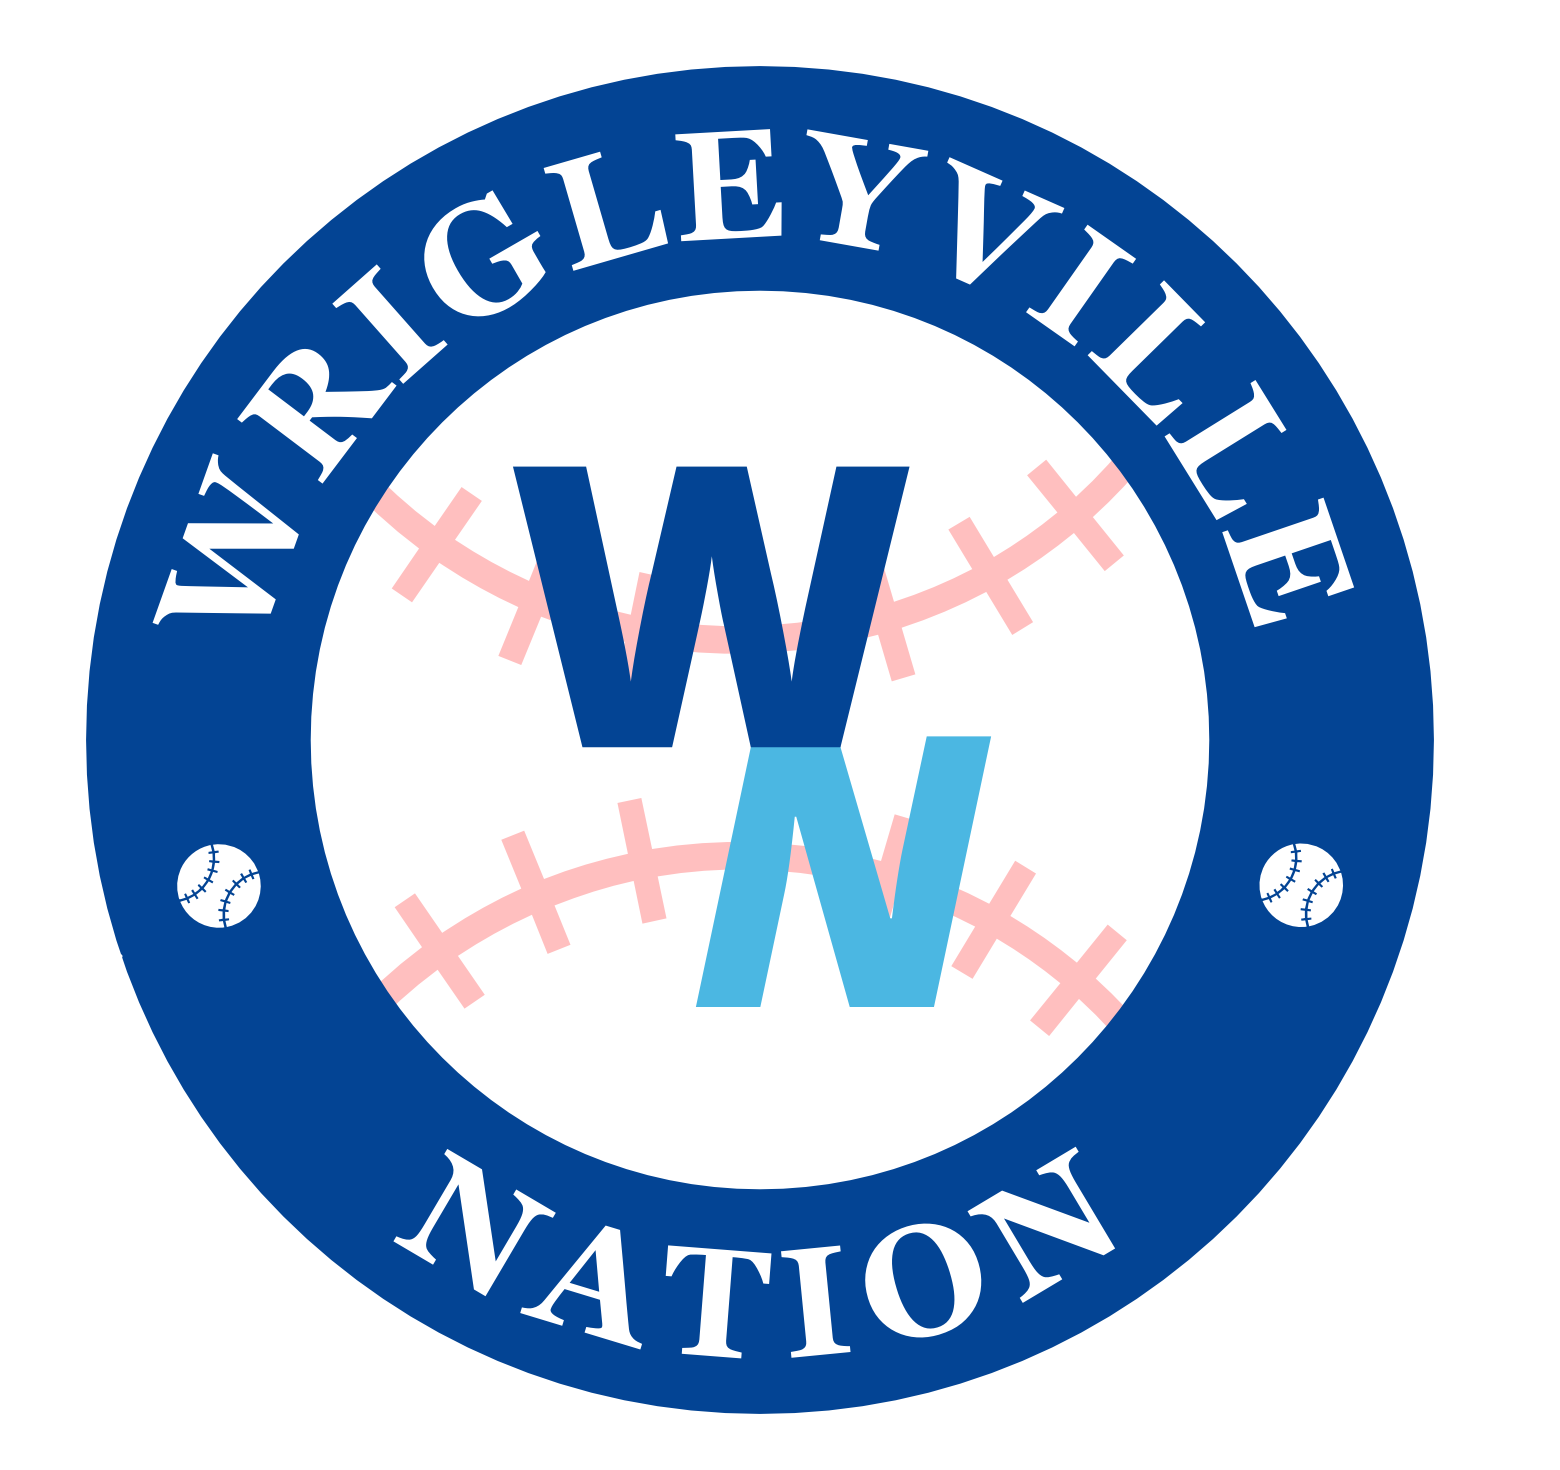 Wrigleyville Nation Ep 202 - Guest: Jared Wyllys, Kimbrel Debuts, Injuries, Cubs Struggles, & More show art